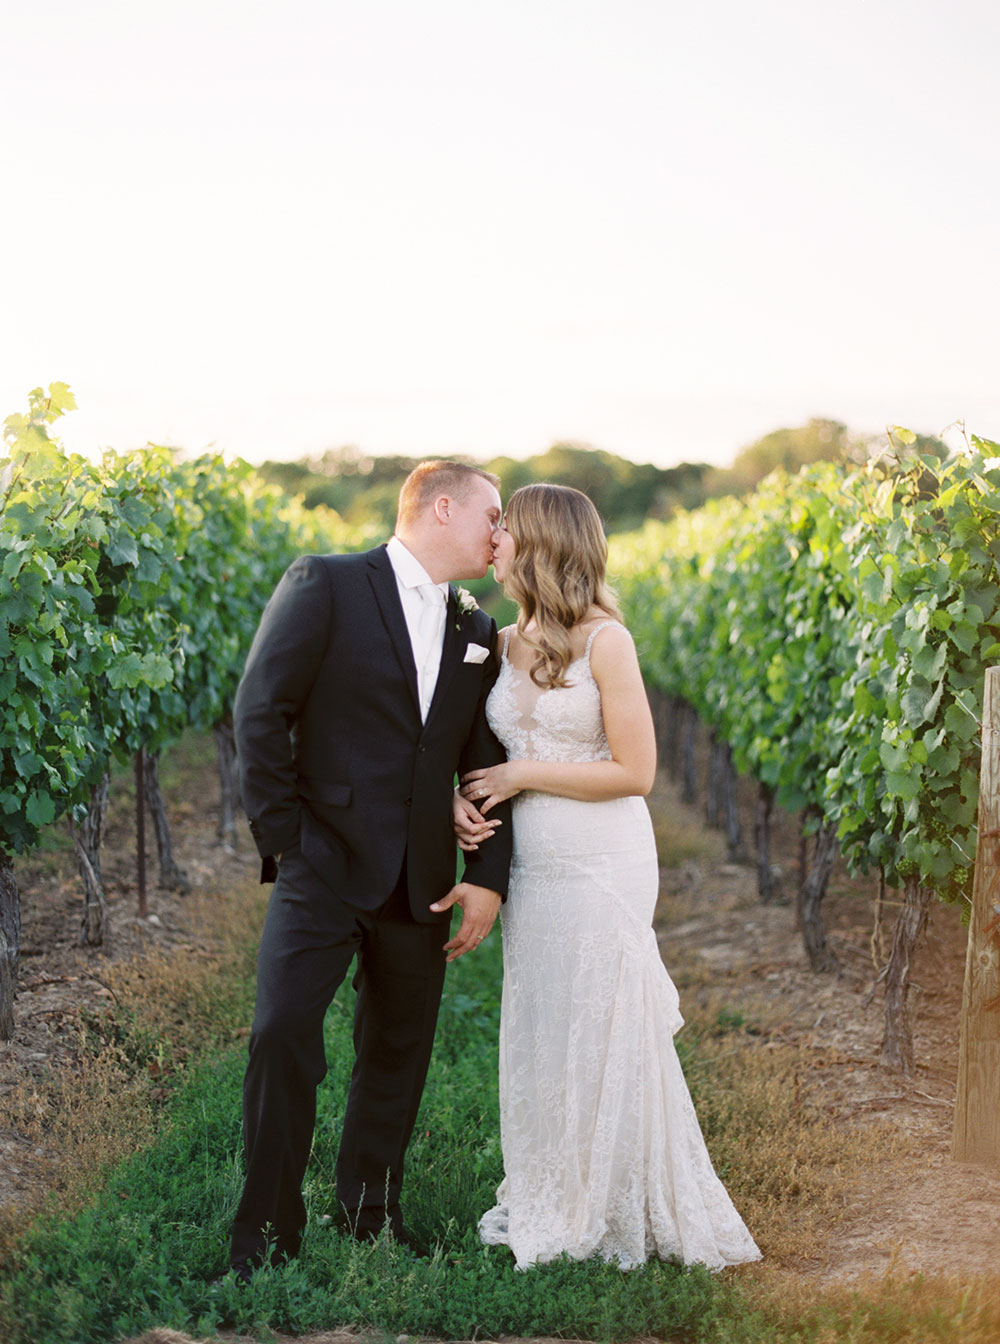 kurtz-orchards-wedding-gracewood-estate-niagara-on-the-lake-photo-by-katie-nicolle-photography-0093.JPG